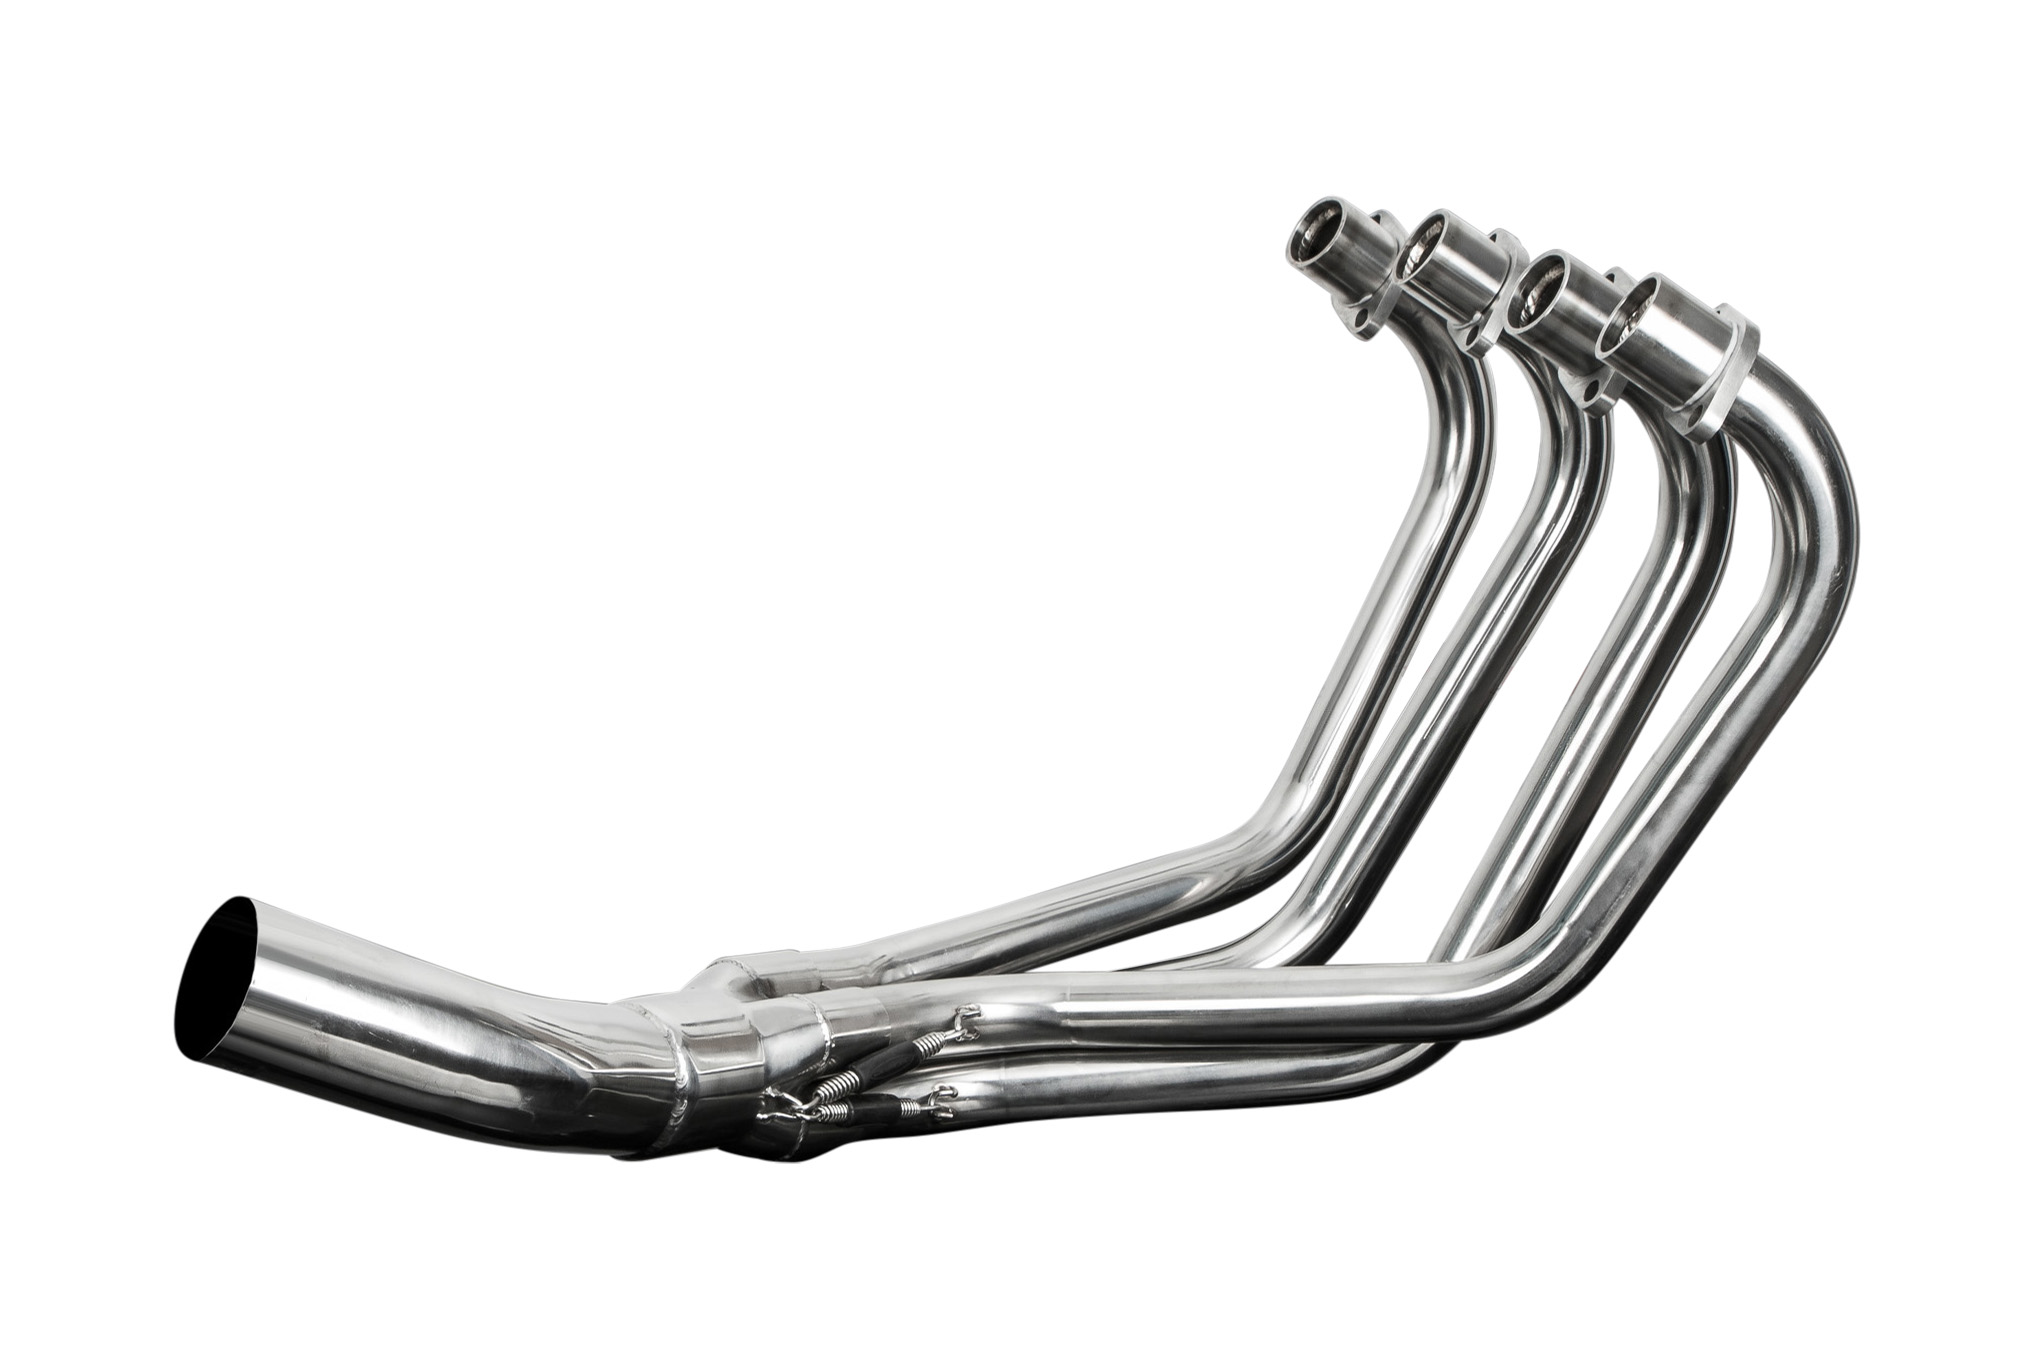 HONDA CB750F1/F2/K7 75-78 STAINLESS 4-1 EXHAUST DOWNPIPES